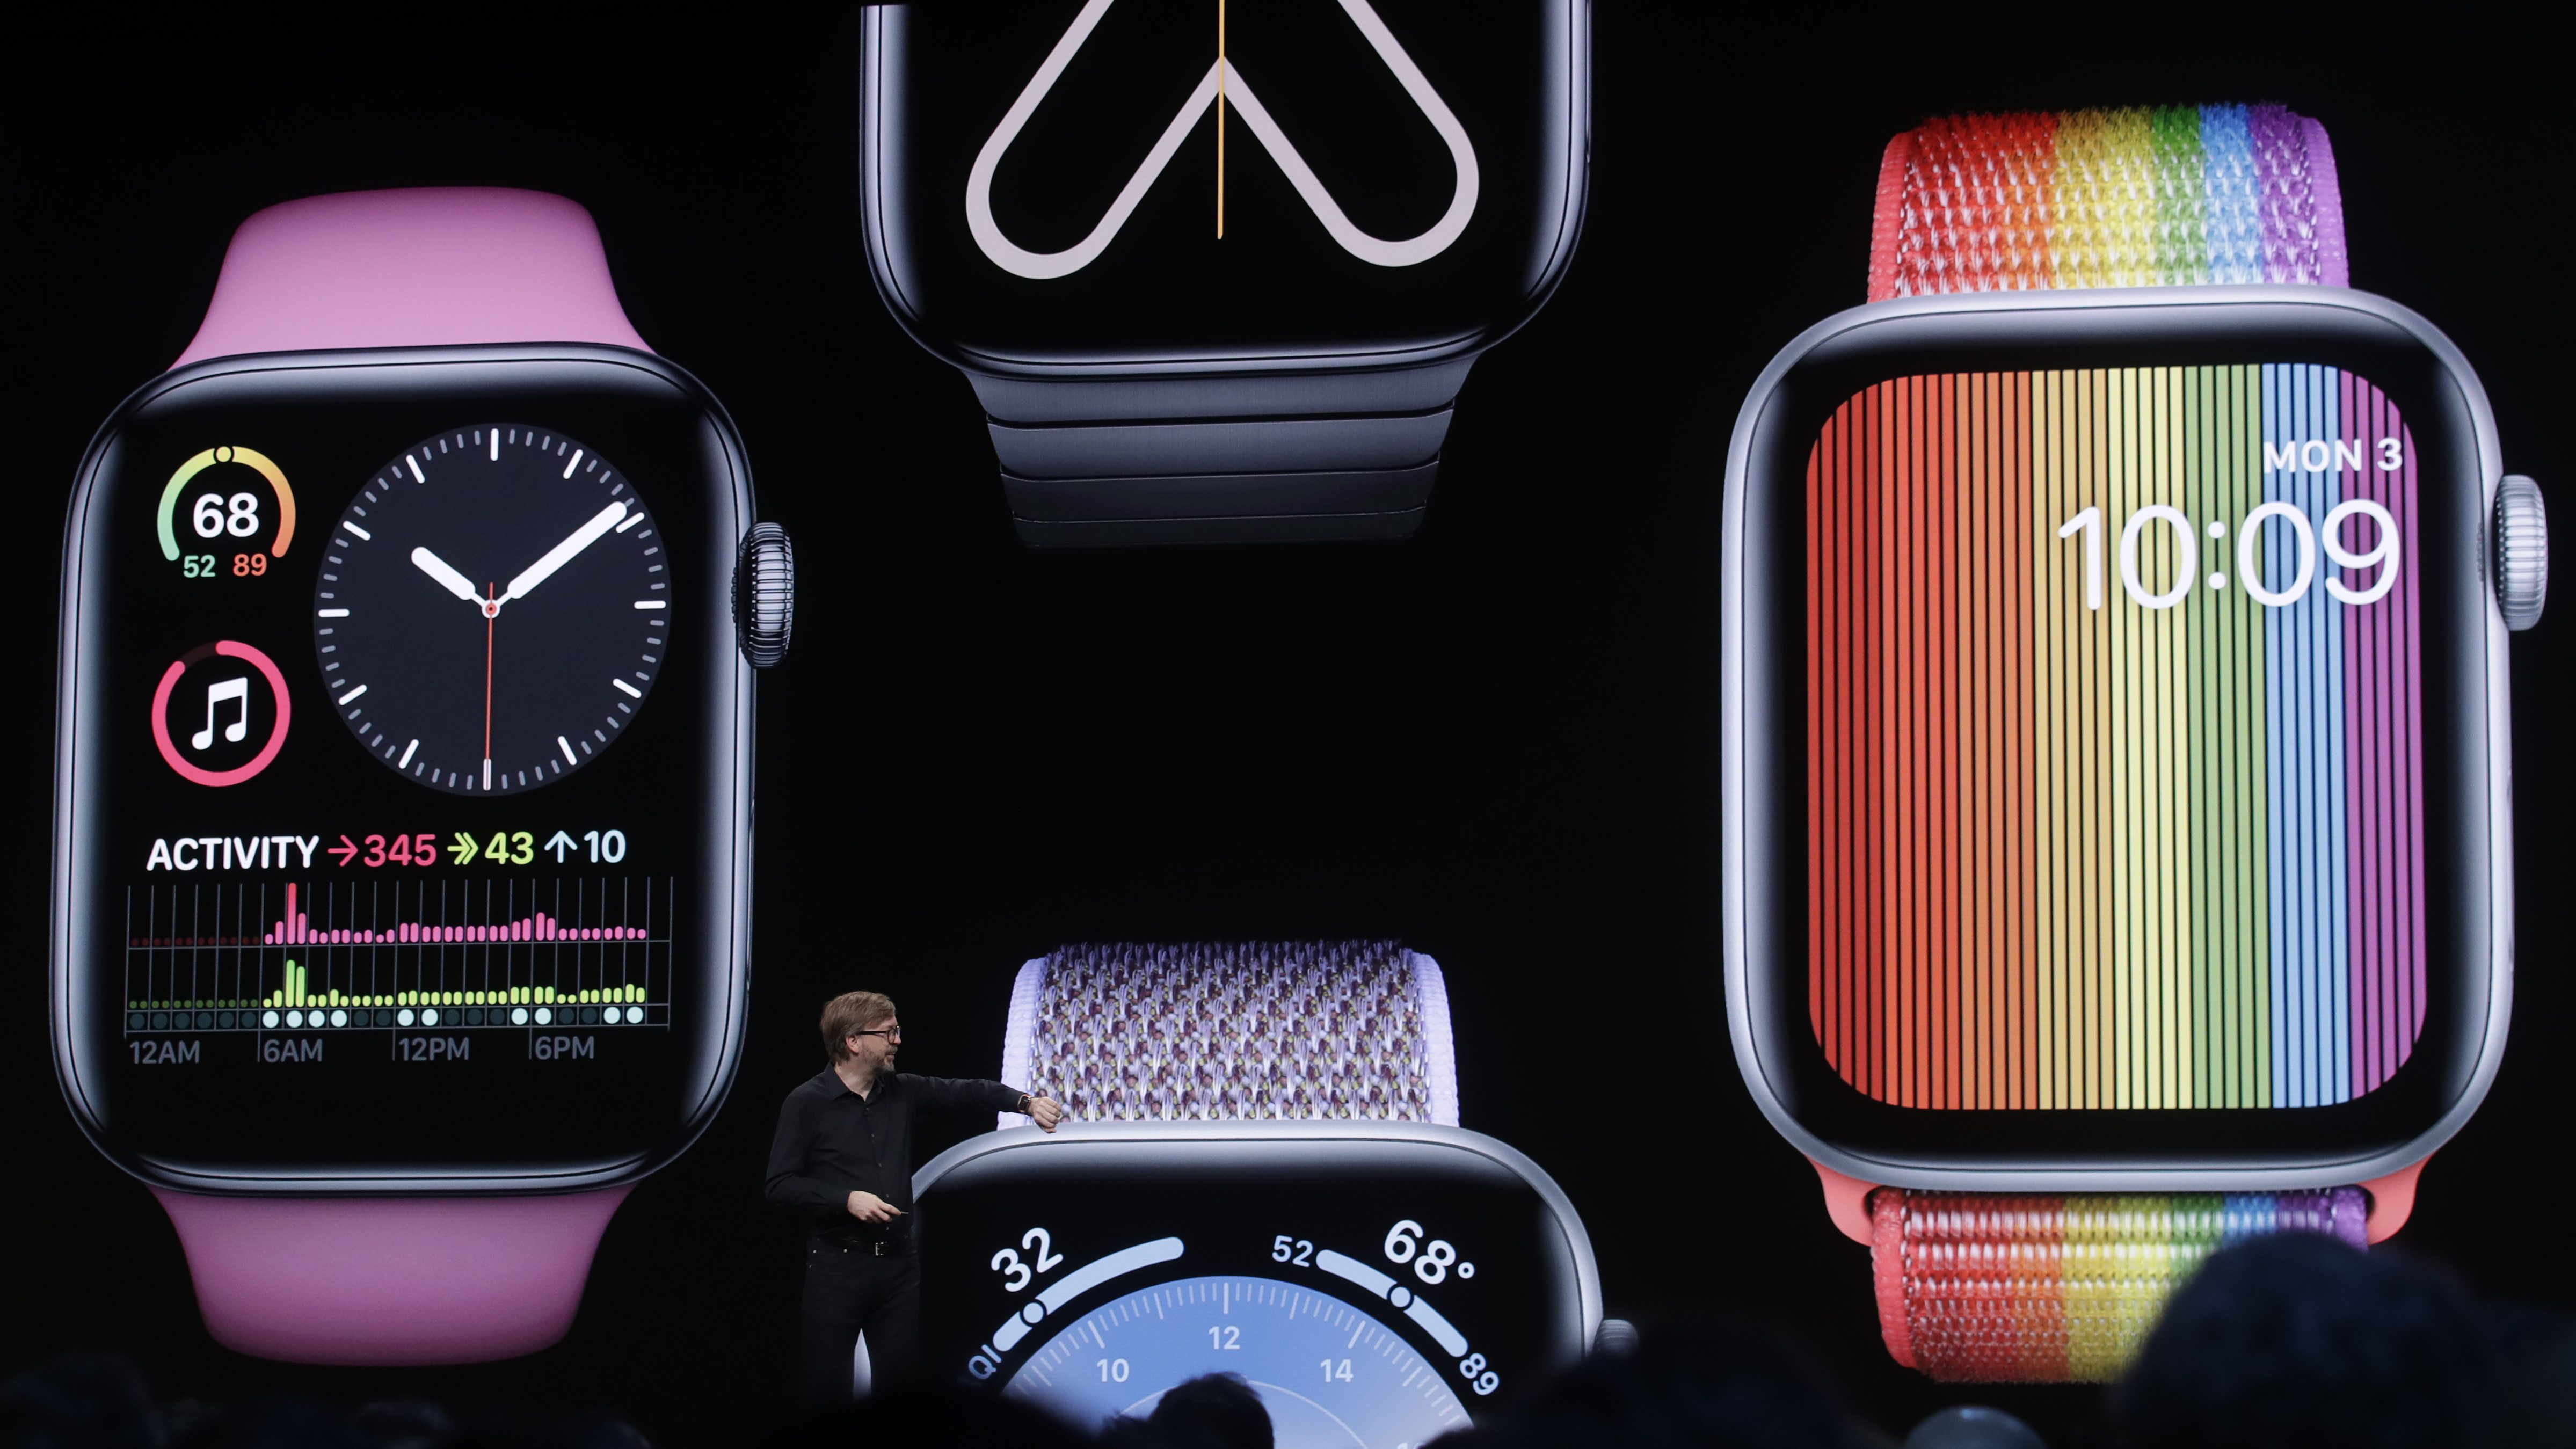 Apple's Kevin Lynch speaks on Apple Watch at the Apple Worldwide Developers Conference in San Jose